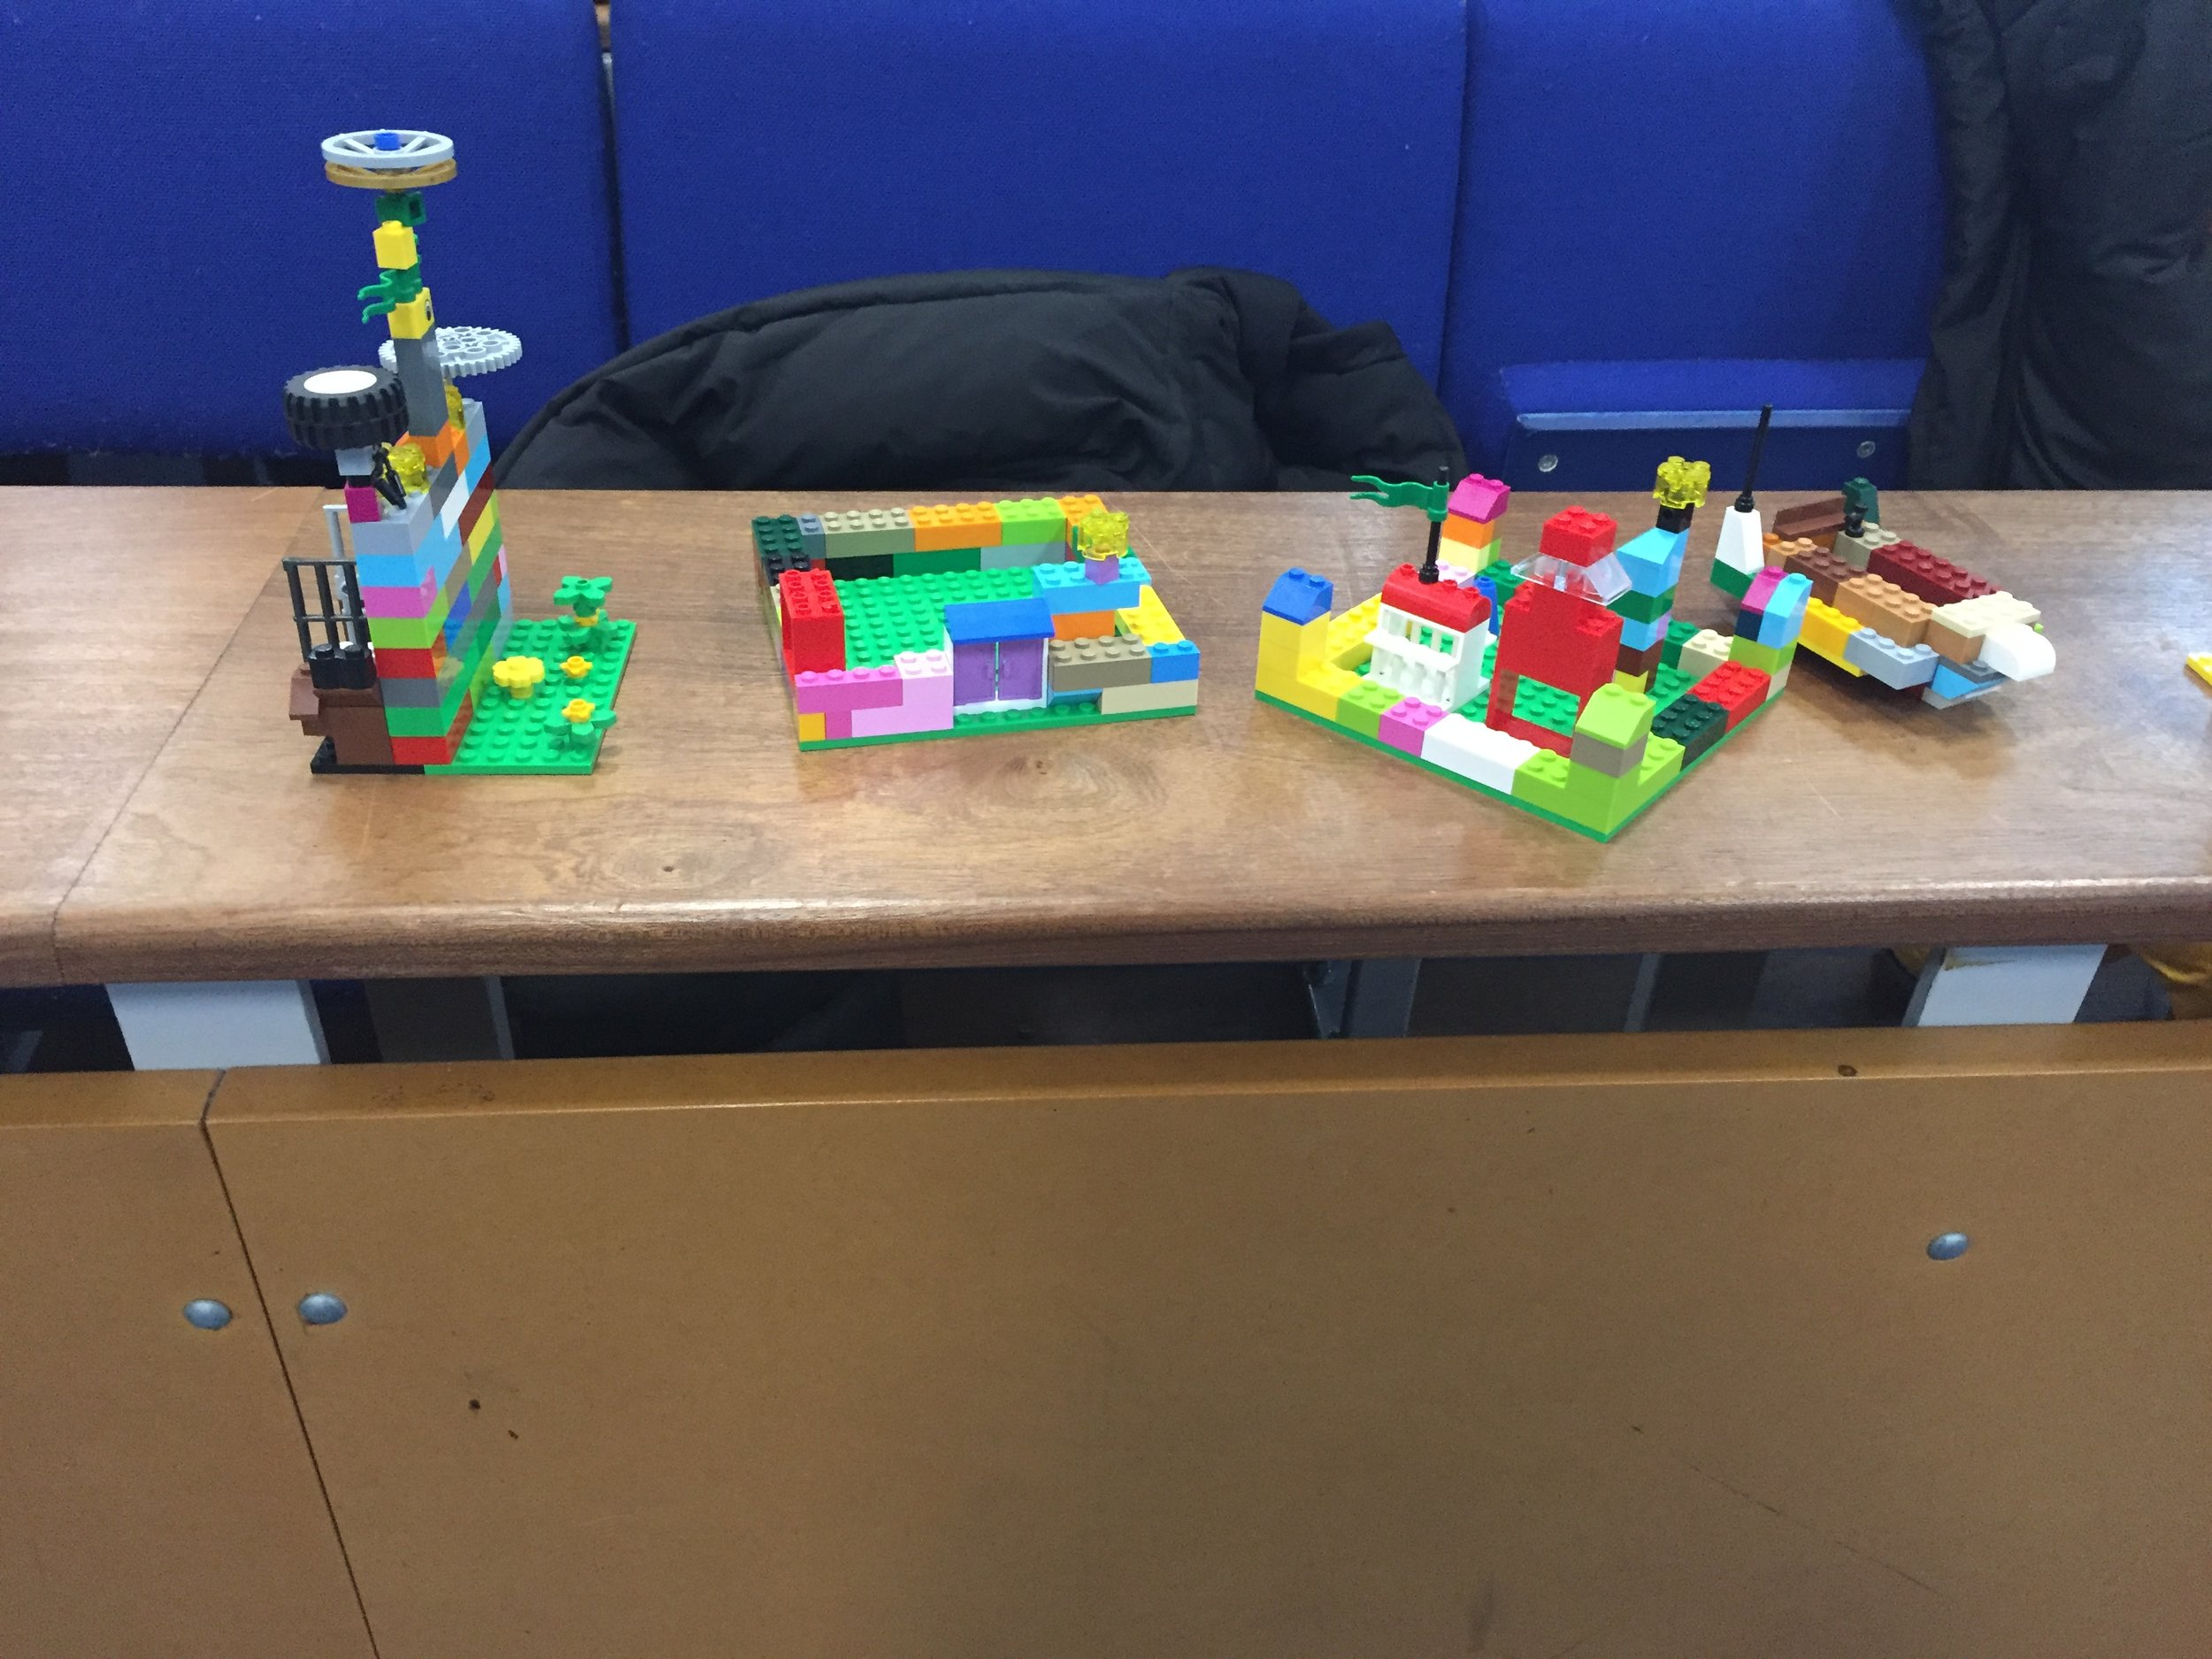 Some more lego models bult by the second years.